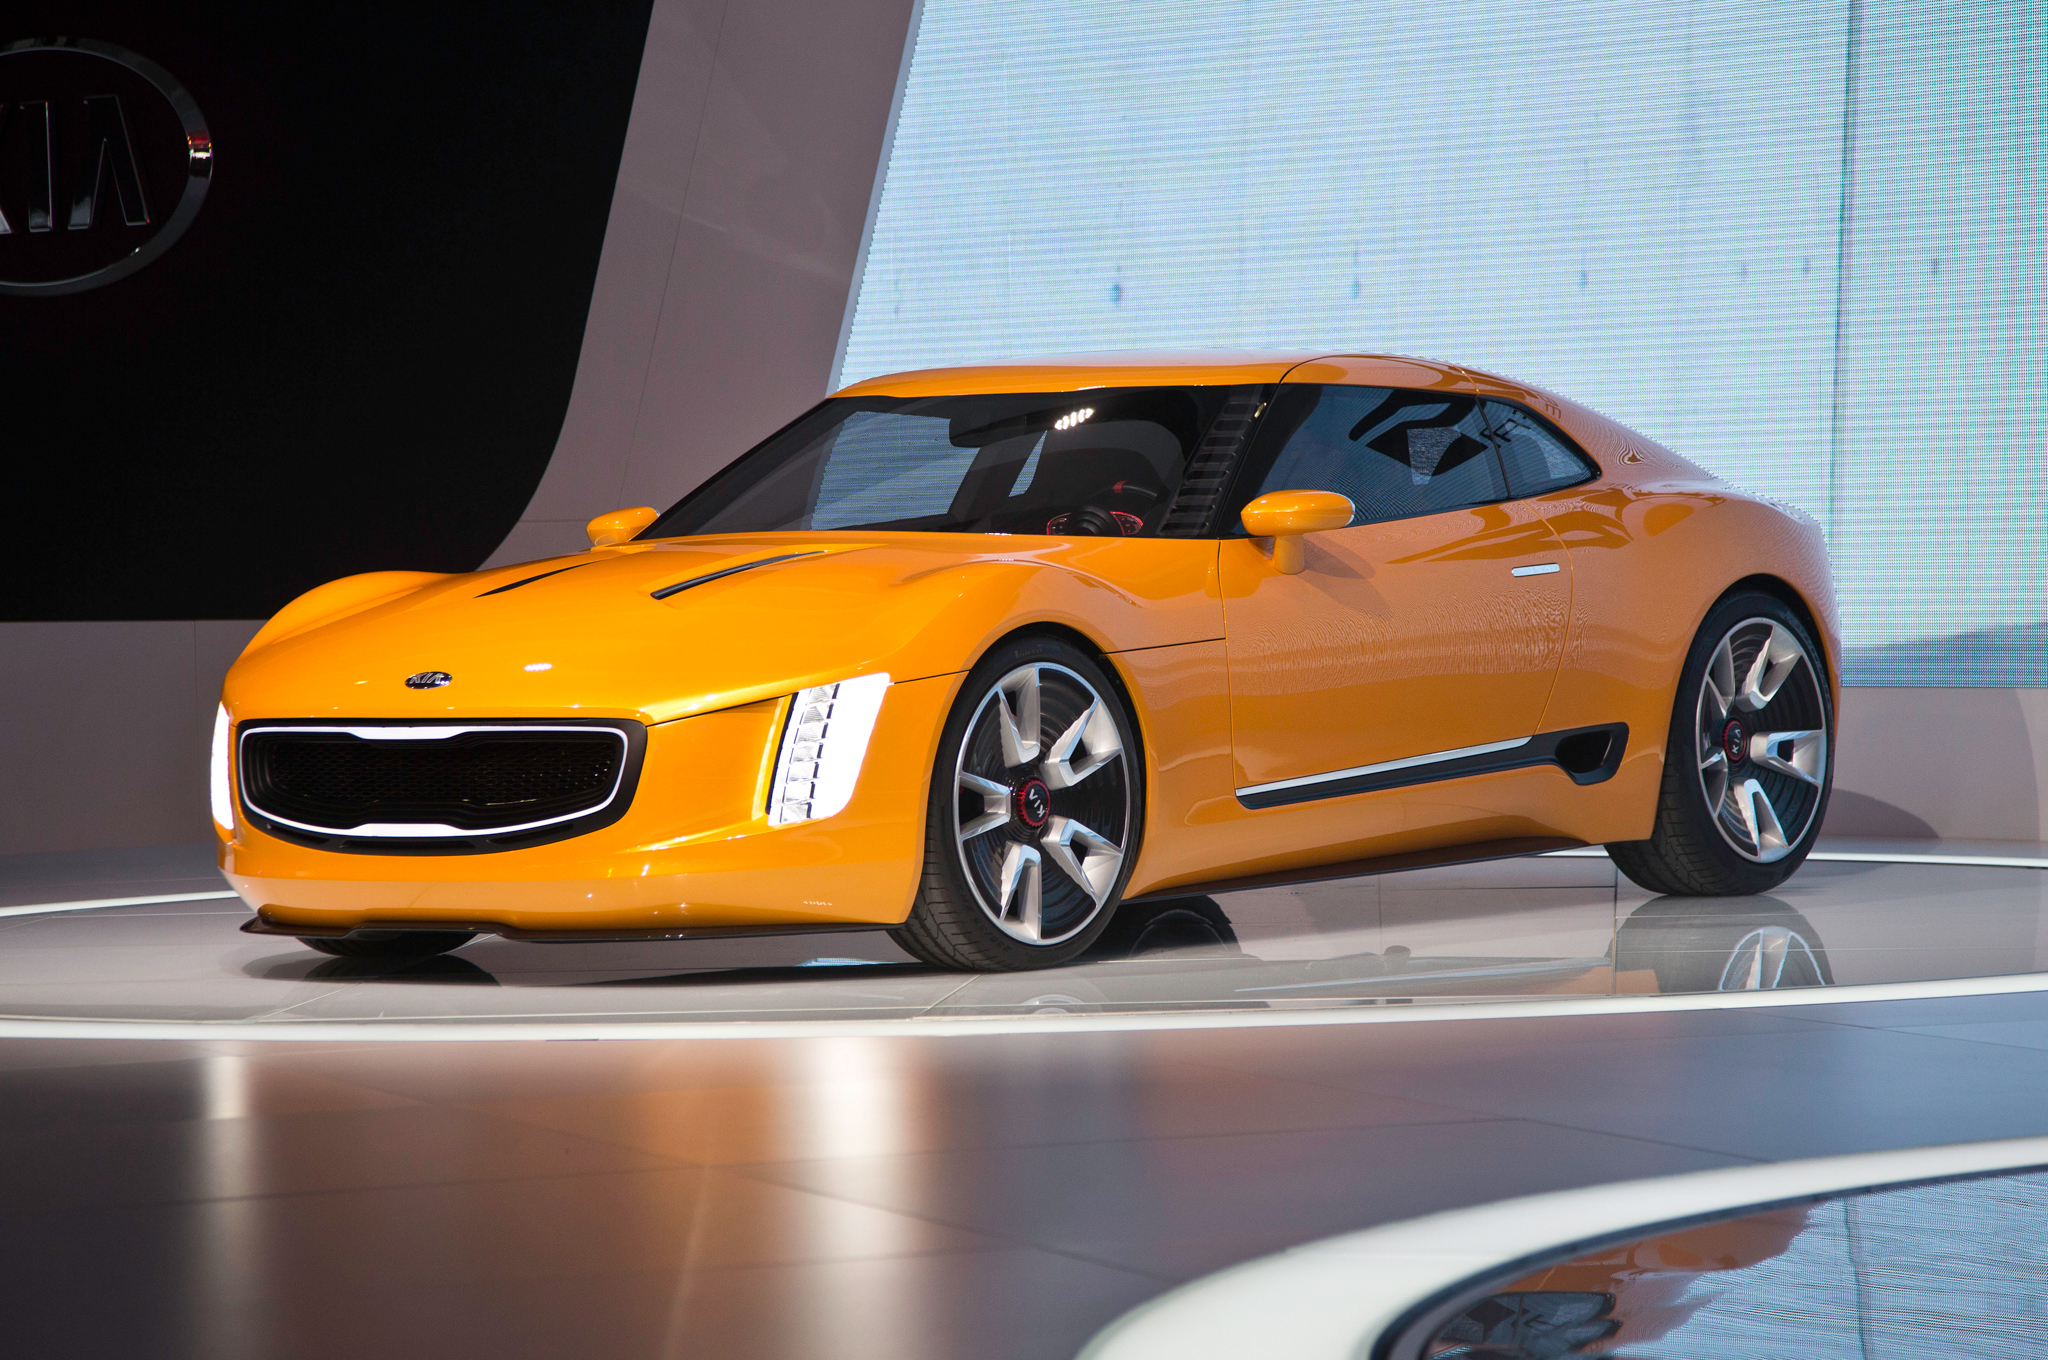 kia gt4 stinger concept first look - motortrend